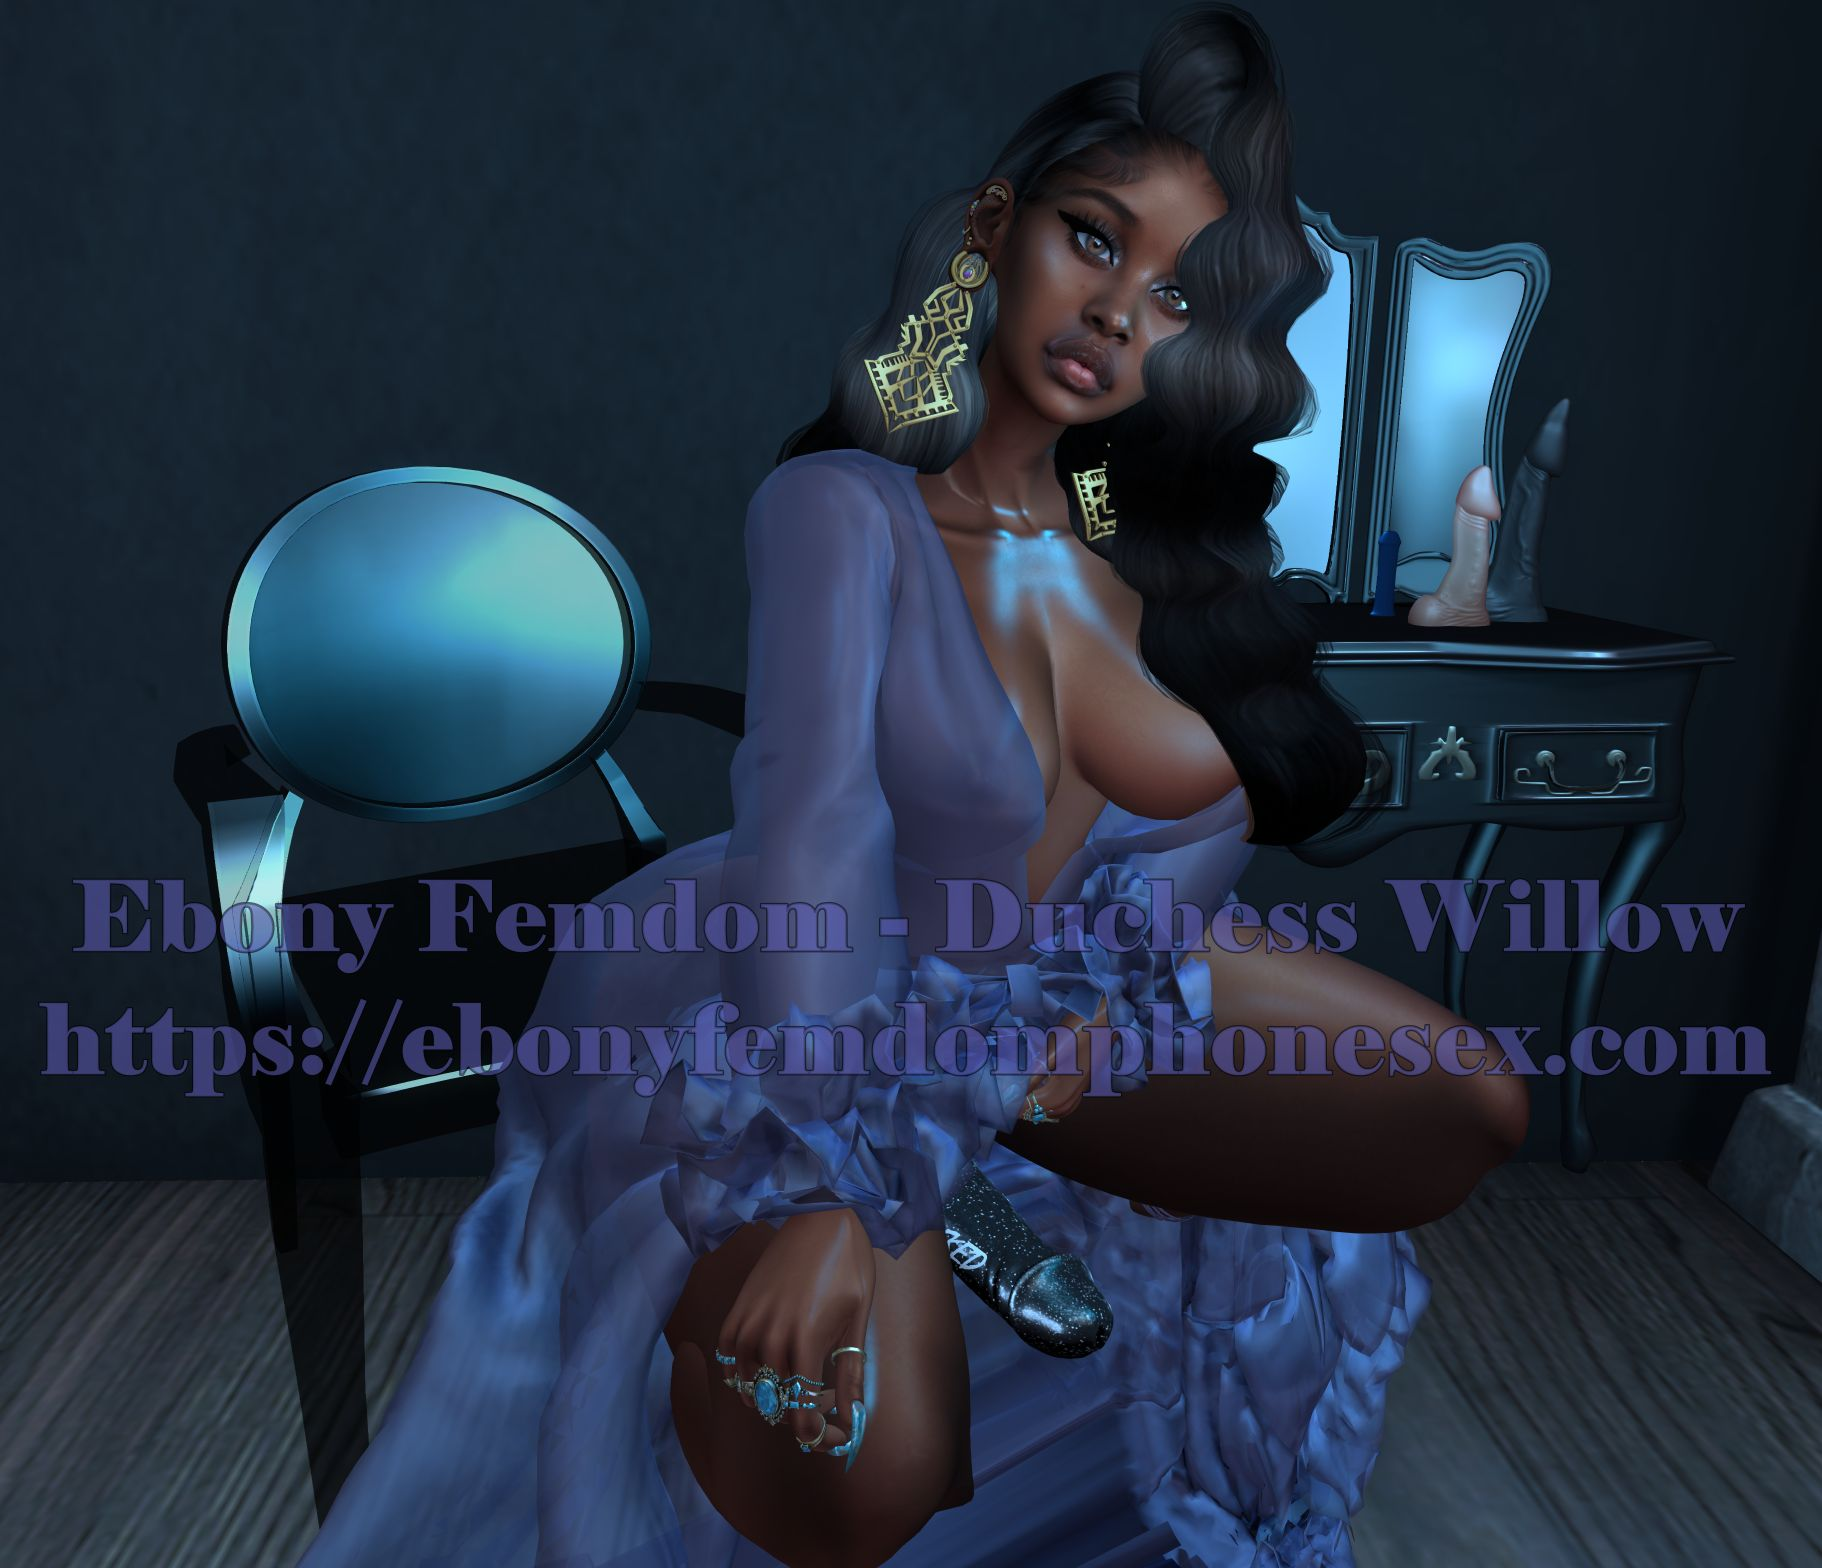 Fnding a Strapon Mistress by Duchess Willow